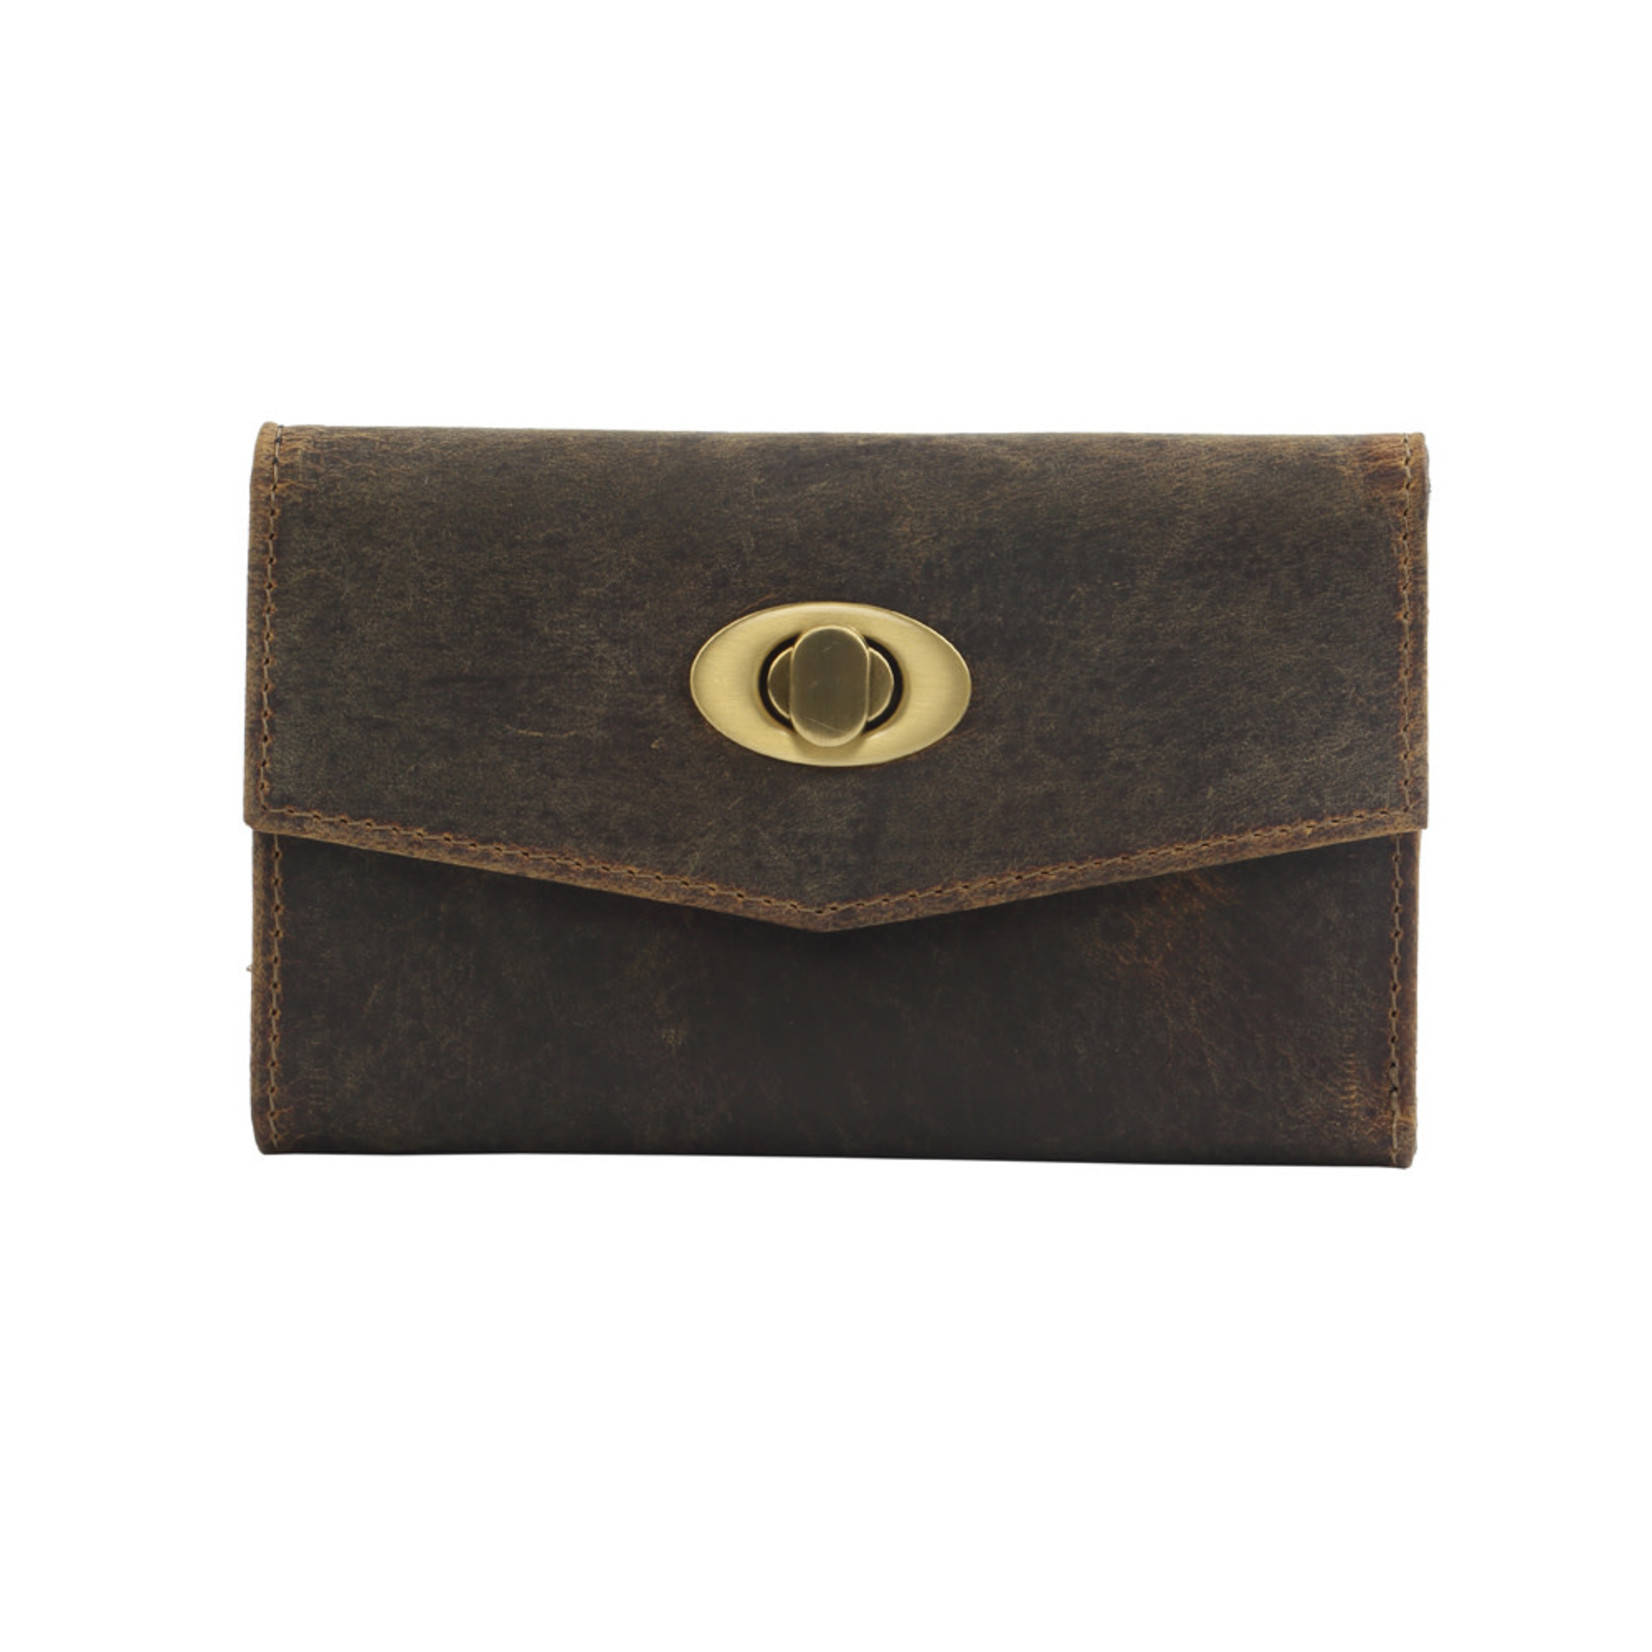 Myra Bags S-2726 Dawn to Dusk Leather Wallet